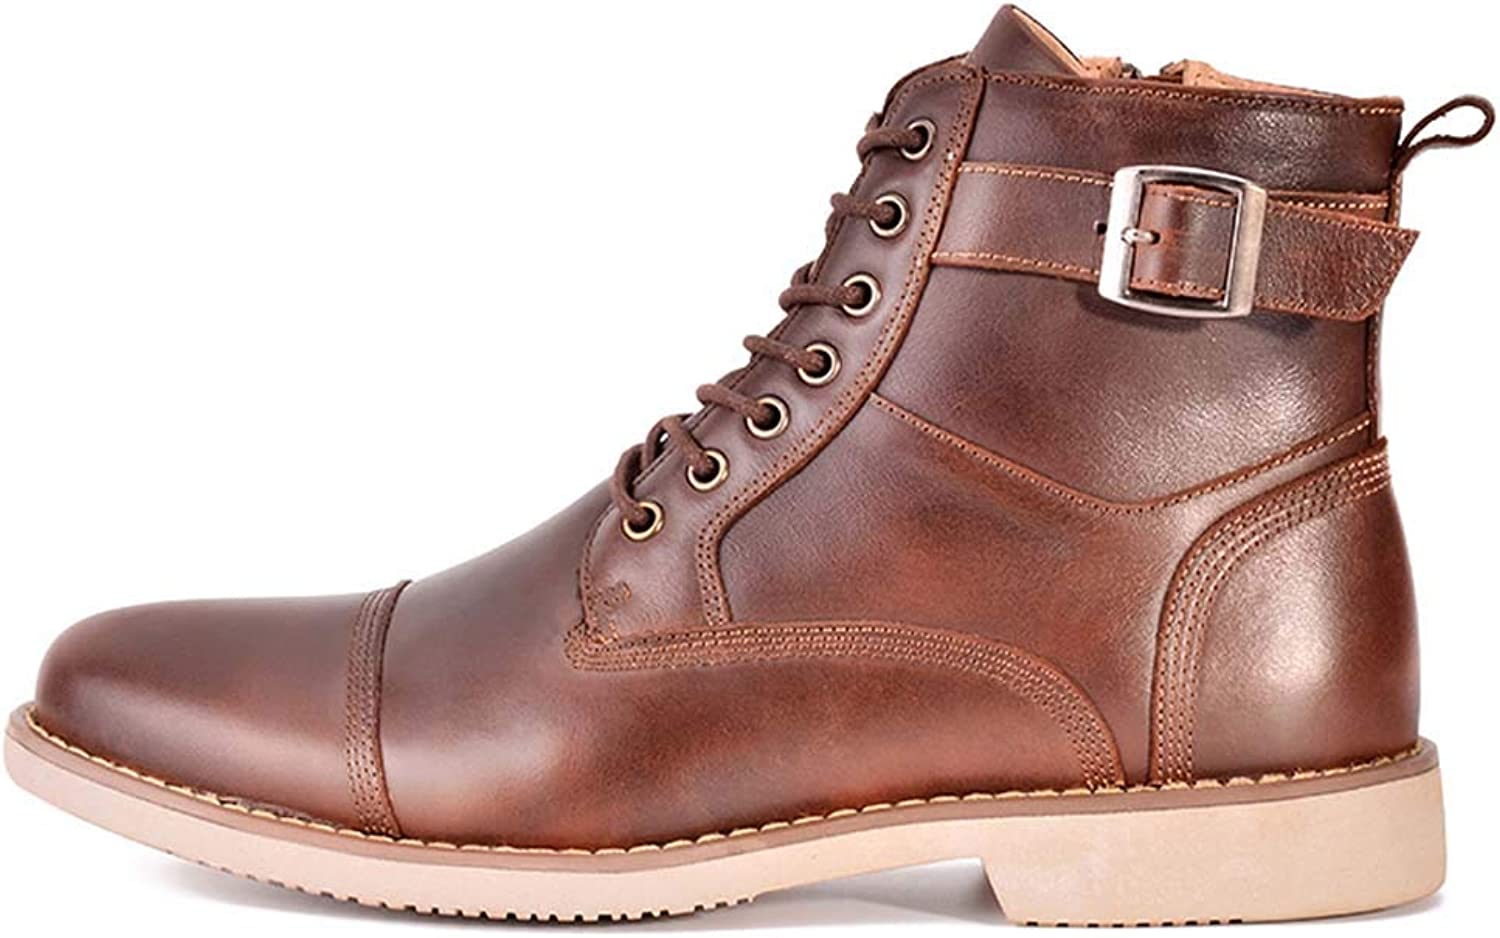 MISS&YG Men's High-Top Leather Lace-Up Boots Martin Boots Casual shoes